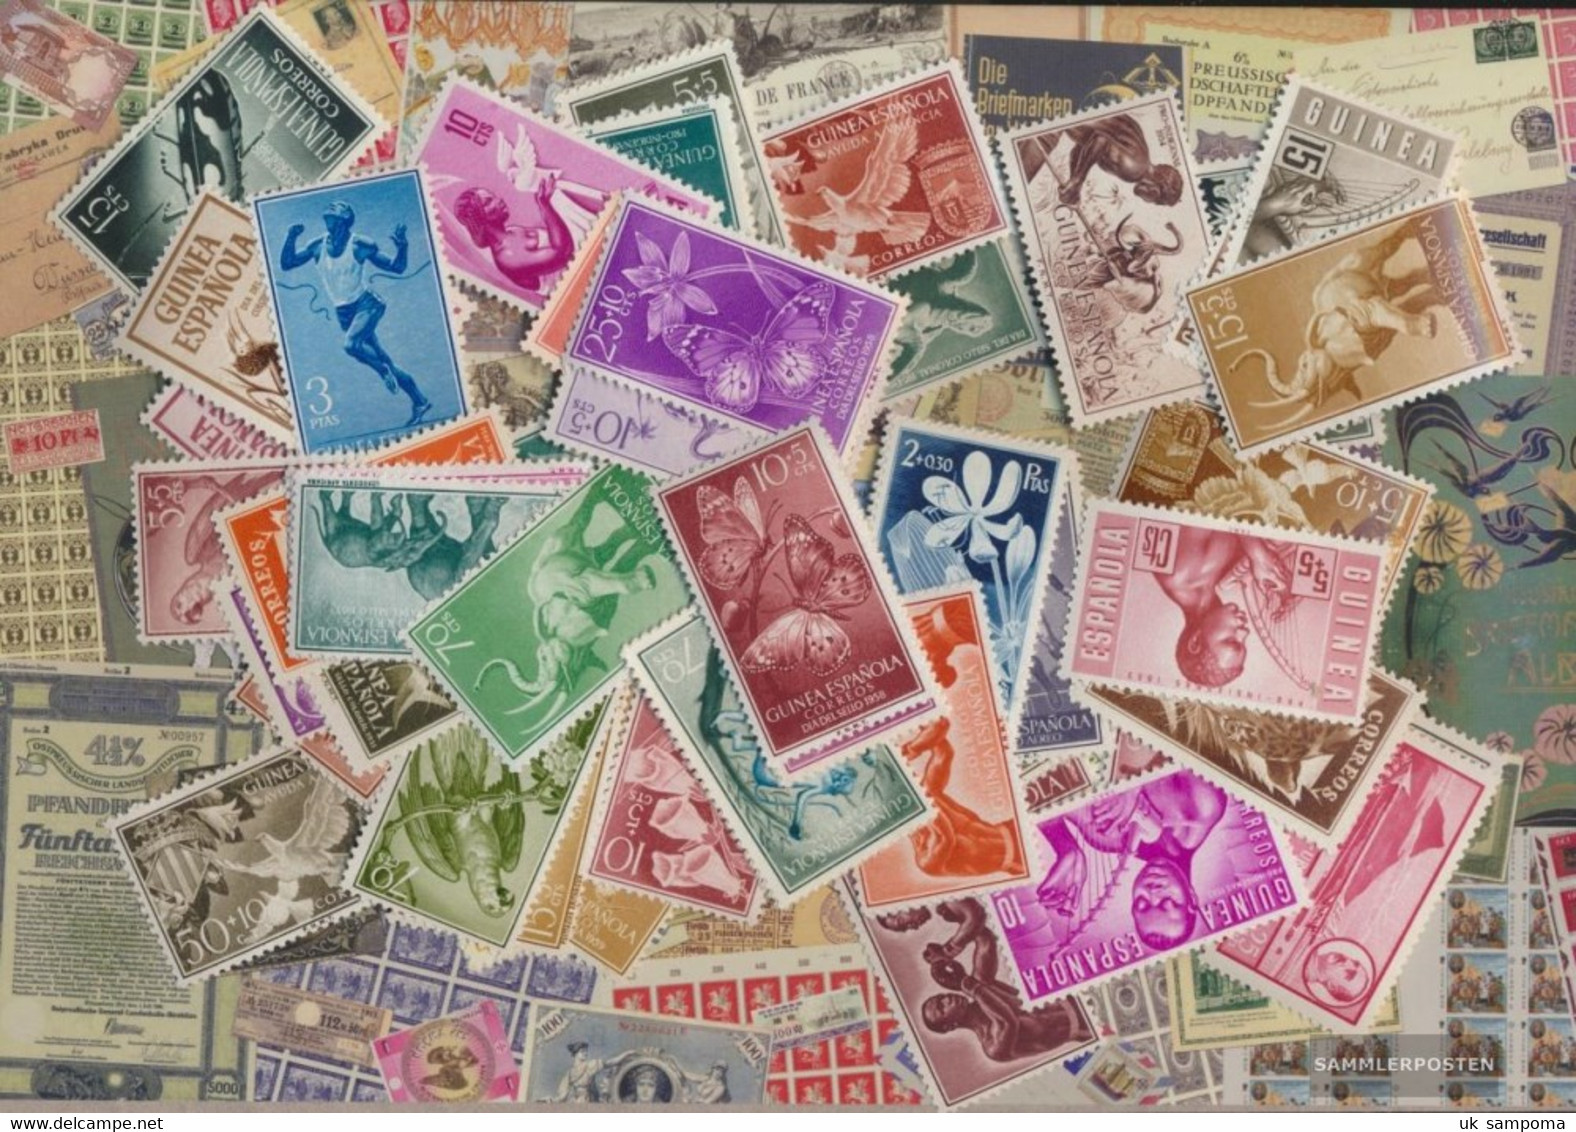 Spanisch Guinea Stamps-250 Different Stamps - Spanish Guinea